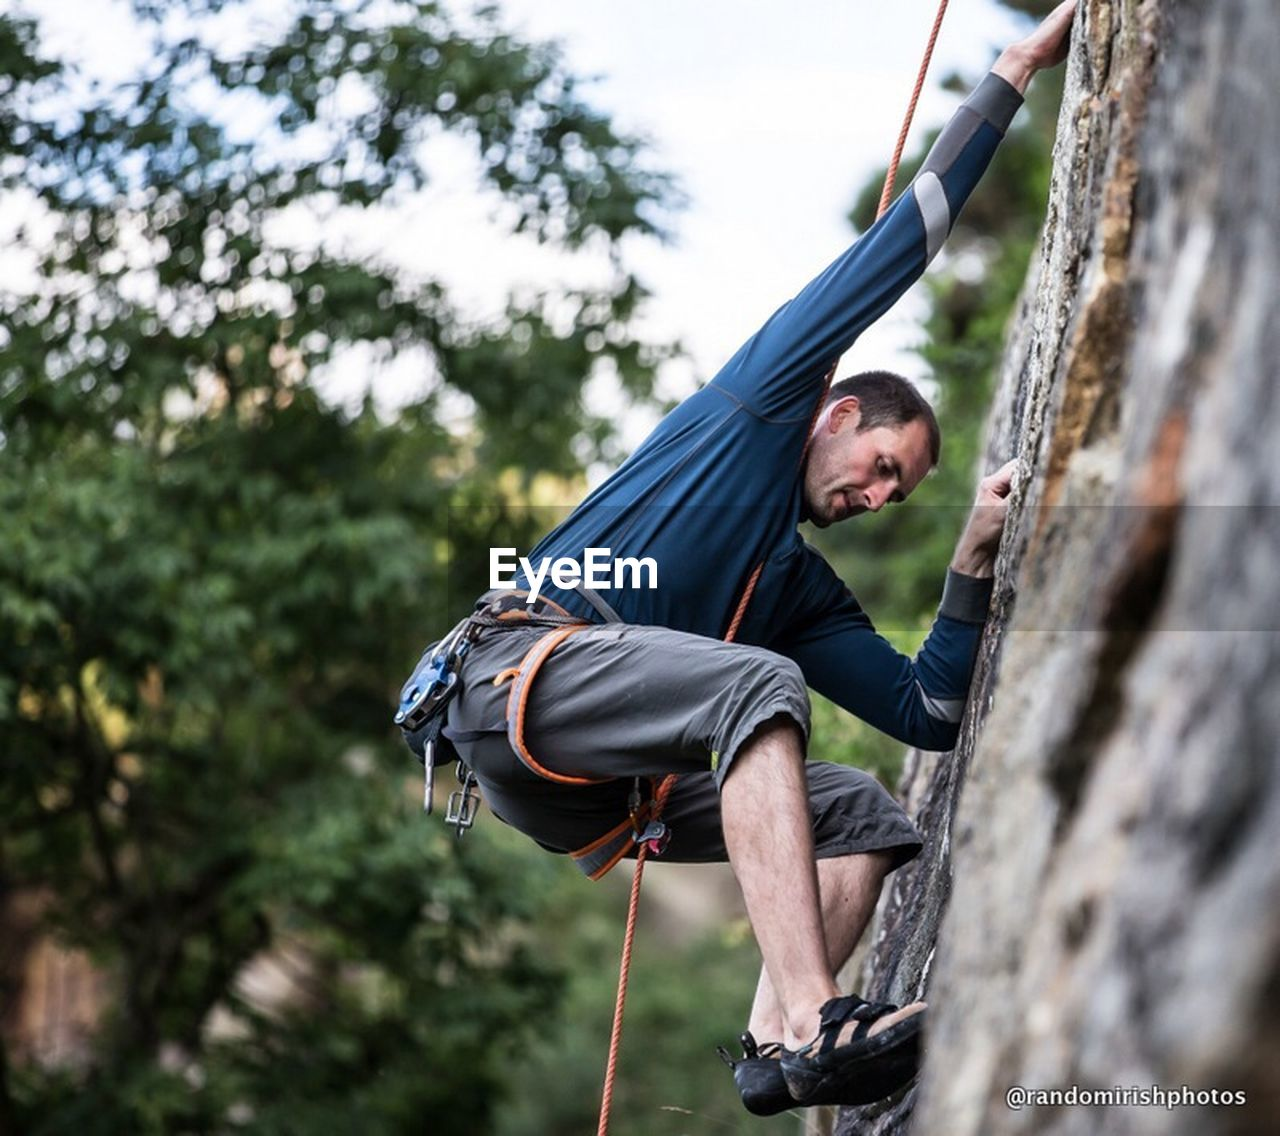 adventure, rope, one person, rock climbing, sport, day, risk, outdoors, tree, climbing, challenge, men, one man only, low angle view, real people, extreme sports, only men, nature, adults only, adult, people